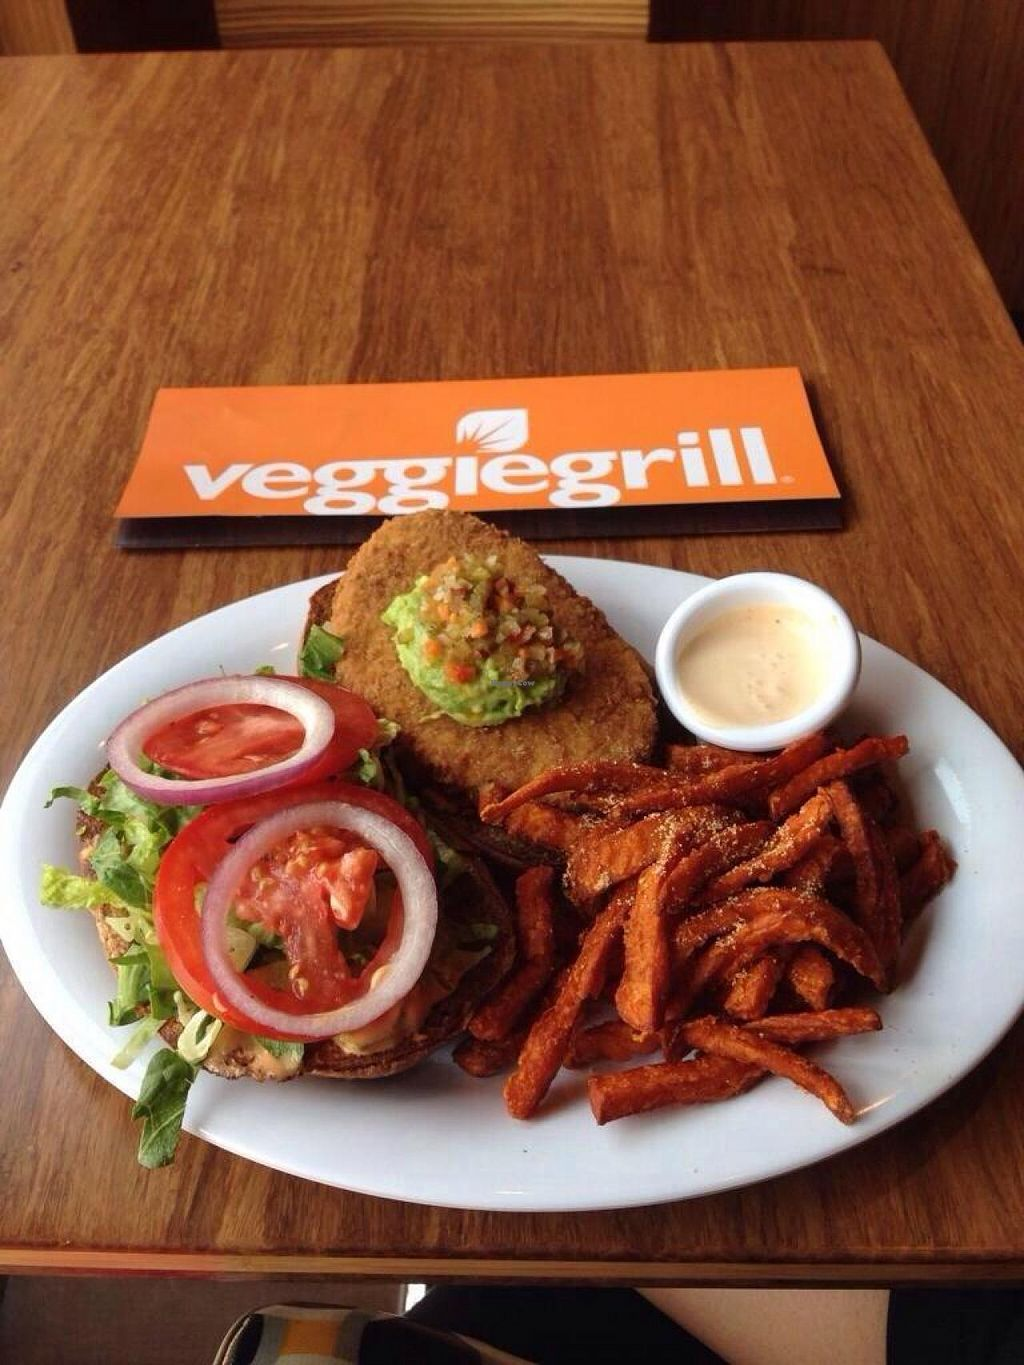 """Photo of Veggie Grill  by <a href=""""/members/profile/Carioquinha17"""">Carioquinha17</a> <br/>This is their Santa Fe Chickin Burger and the sweet potato fries. It was amazingly delicious! Their chipotle ranch sauce is to die for <br/> May 11, 2014  - <a href='/contact/abuse/image/47261/69828'>Report</a>"""